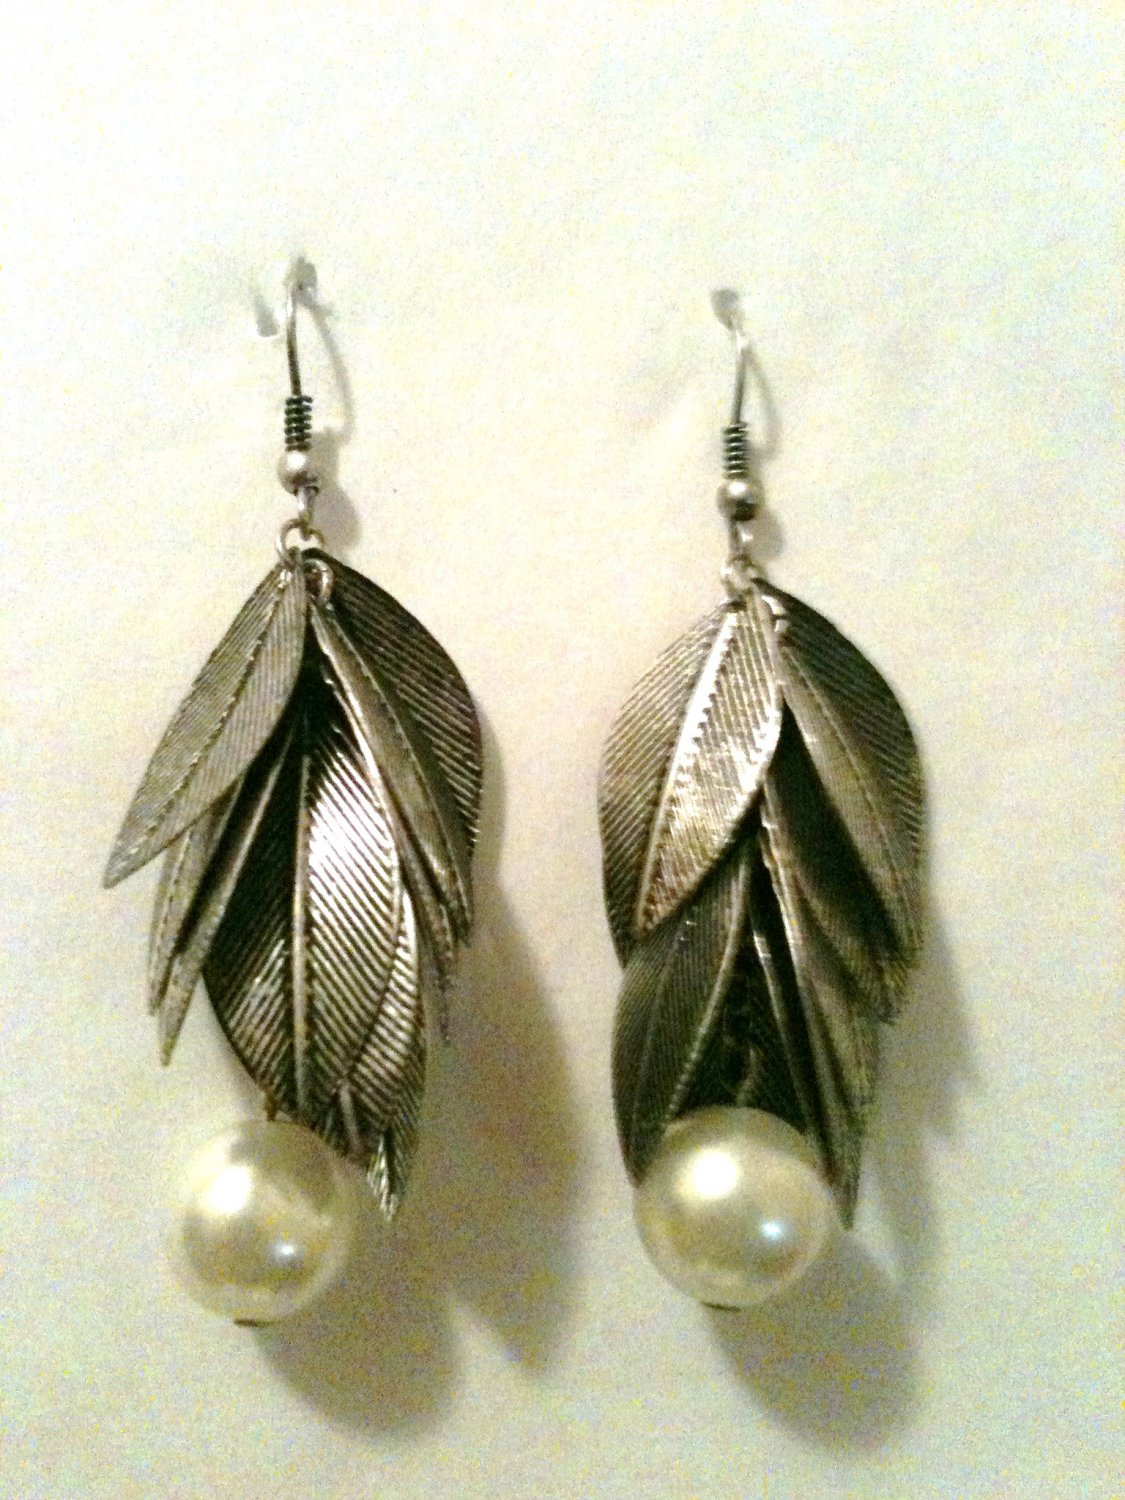 ANTIQUE SILVER LEAF EARRINGS WITH PEARL (NEW)